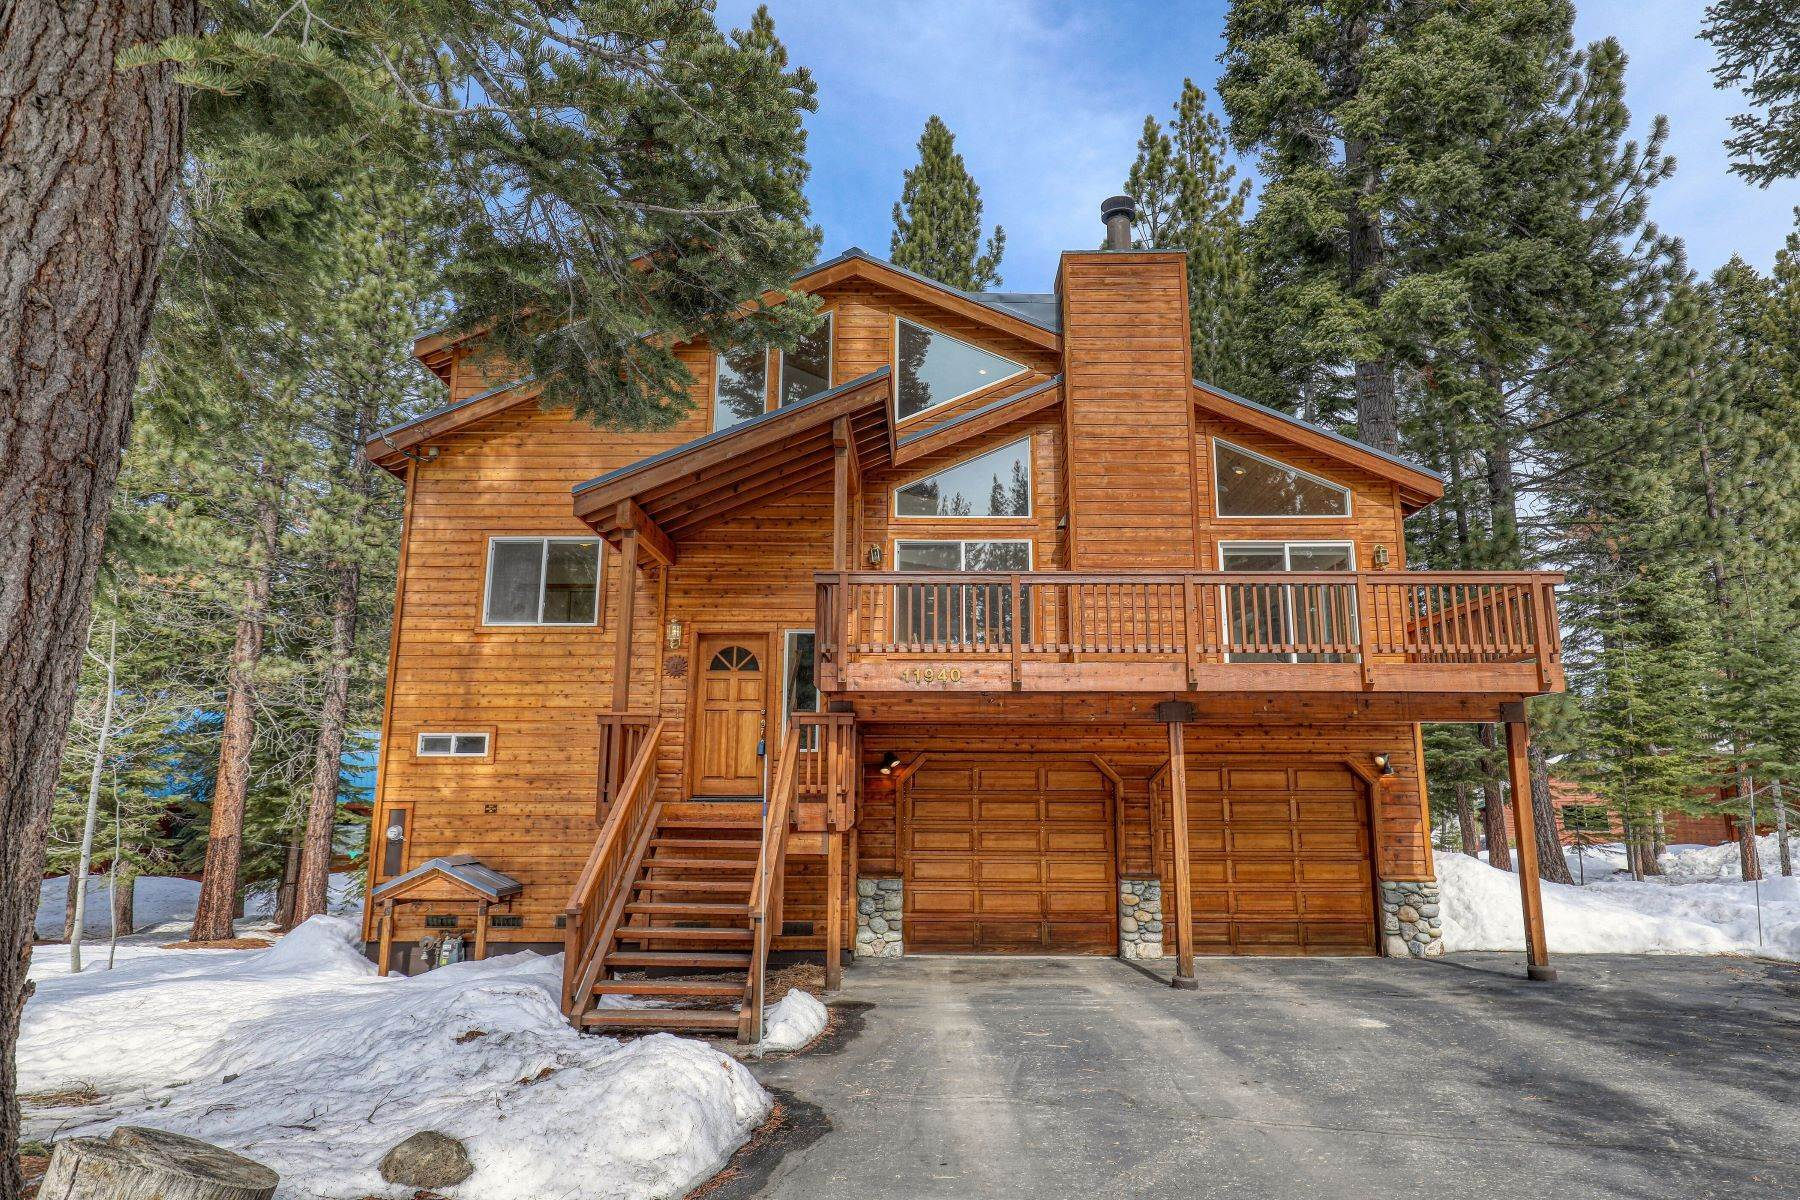 Single Family Homes for Active at 11940 Bavarian Way Truckee, California 96161 United States